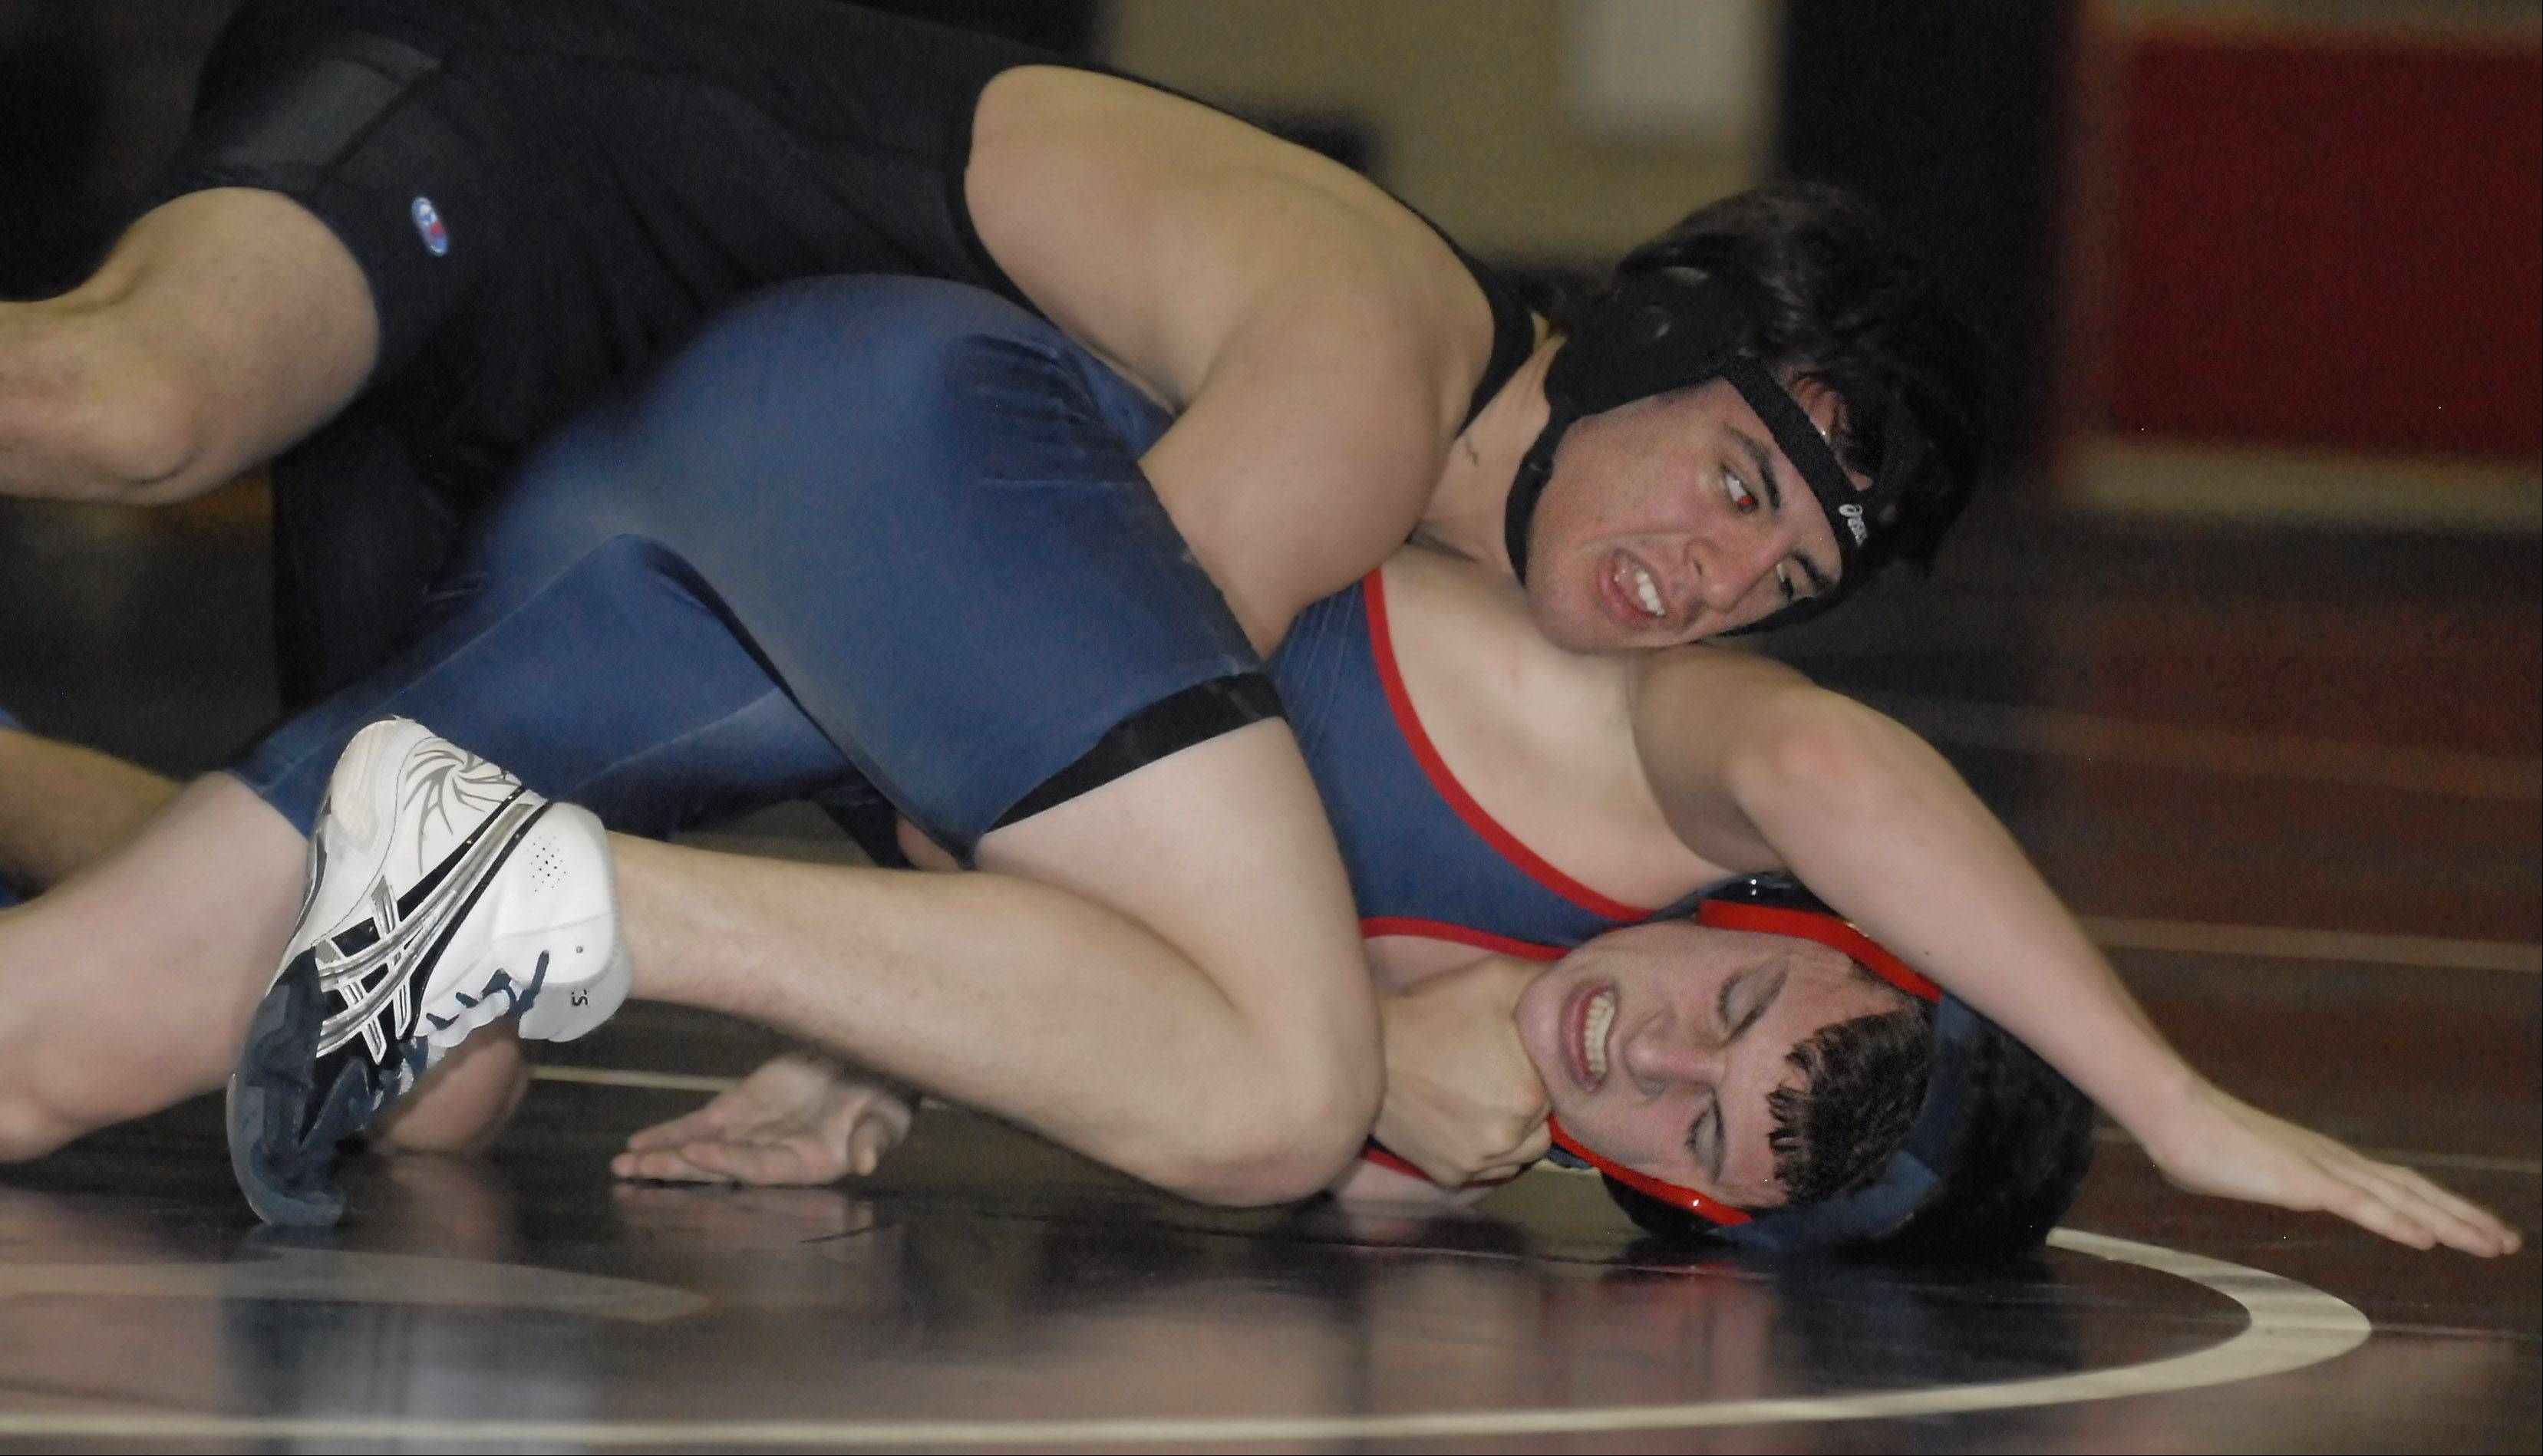 Geneva's Nate Donati takes down South Elgin's Grant Saldivar in the 145-pound match on Saturday, December 1. Donati took the match.